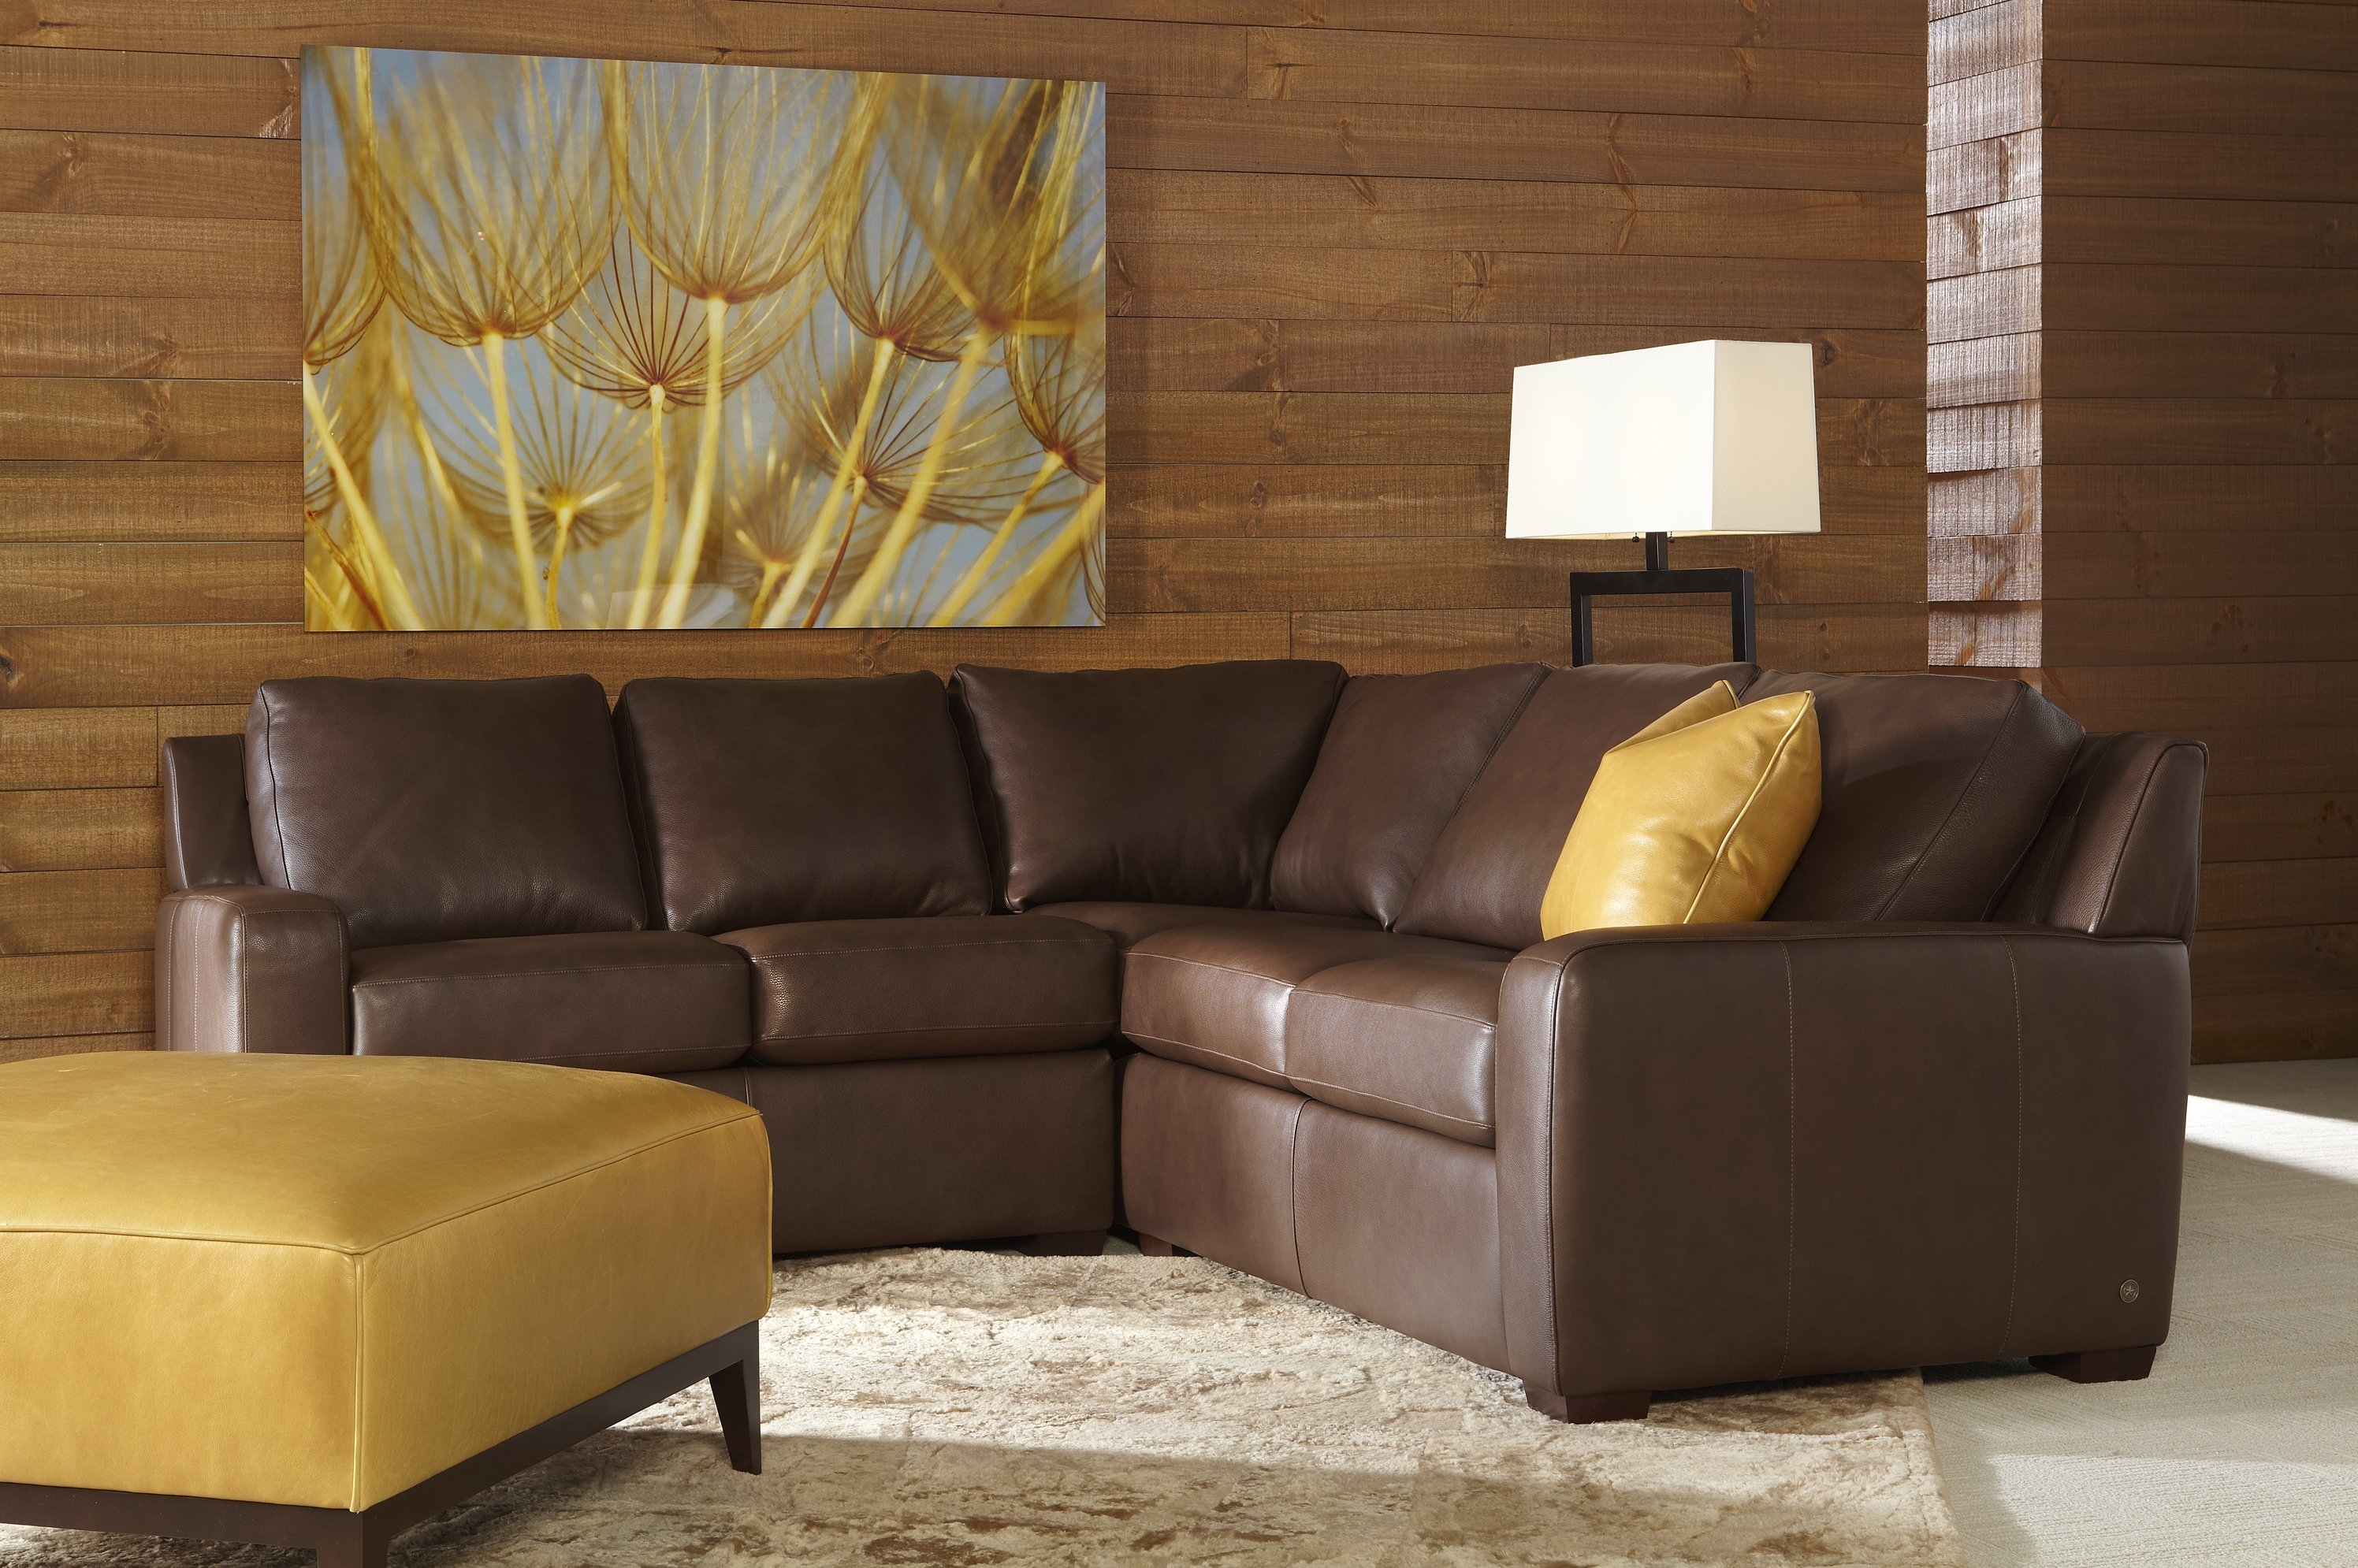 Vast 25 Genuine Leather Reclining Sectional Ideal with Burton Leather 3 Piece Sectionals With Ottoman (Image 28 of 30)